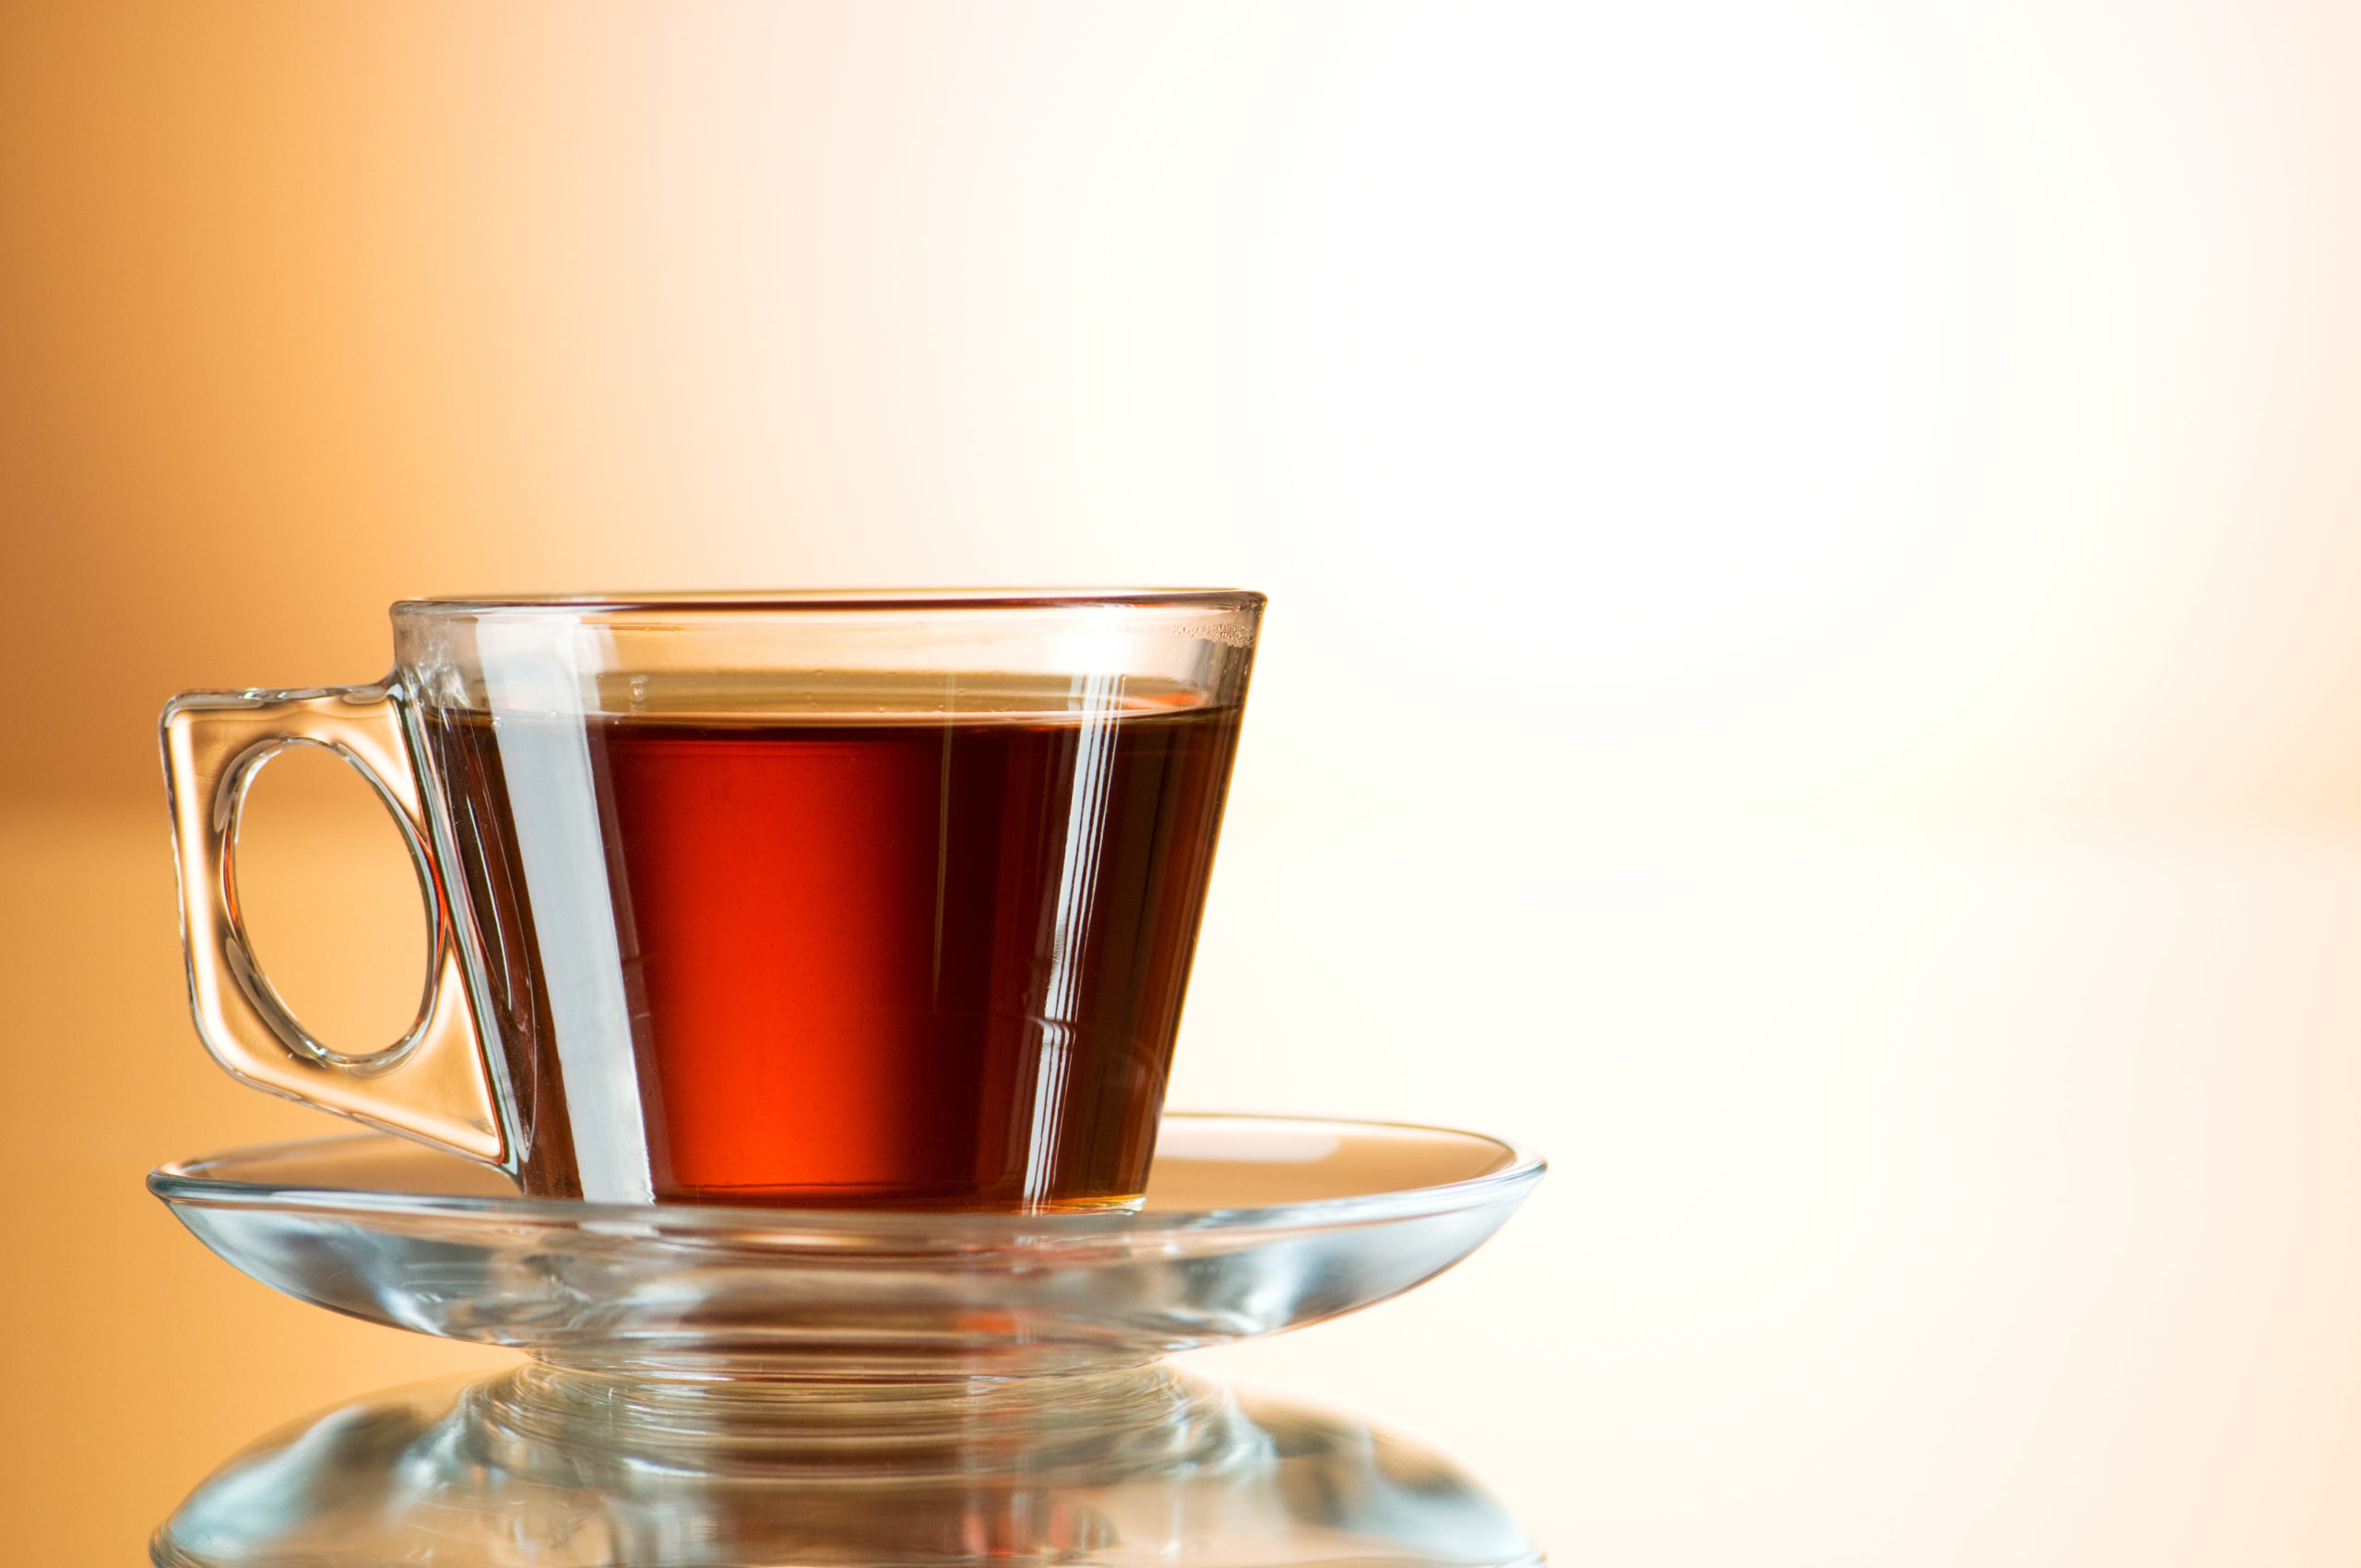 RED RED TEA: Rooibos tea is a balm, inside the body and out